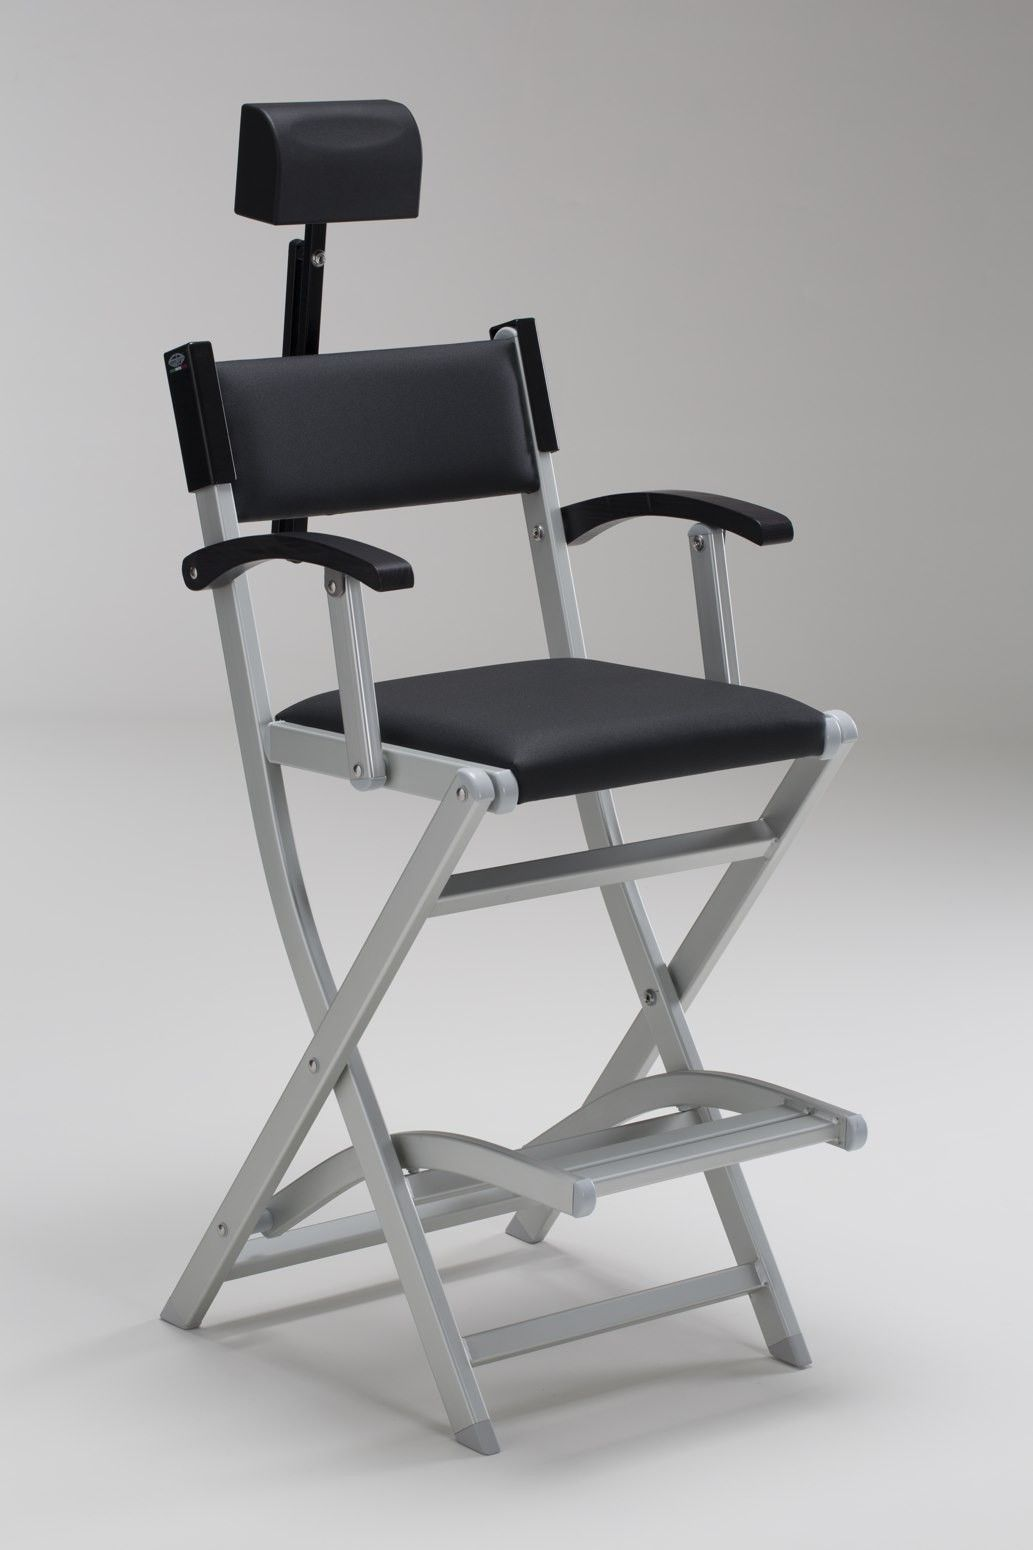 Set Makeup Chair With Headrest For Makeup Artists In 2019